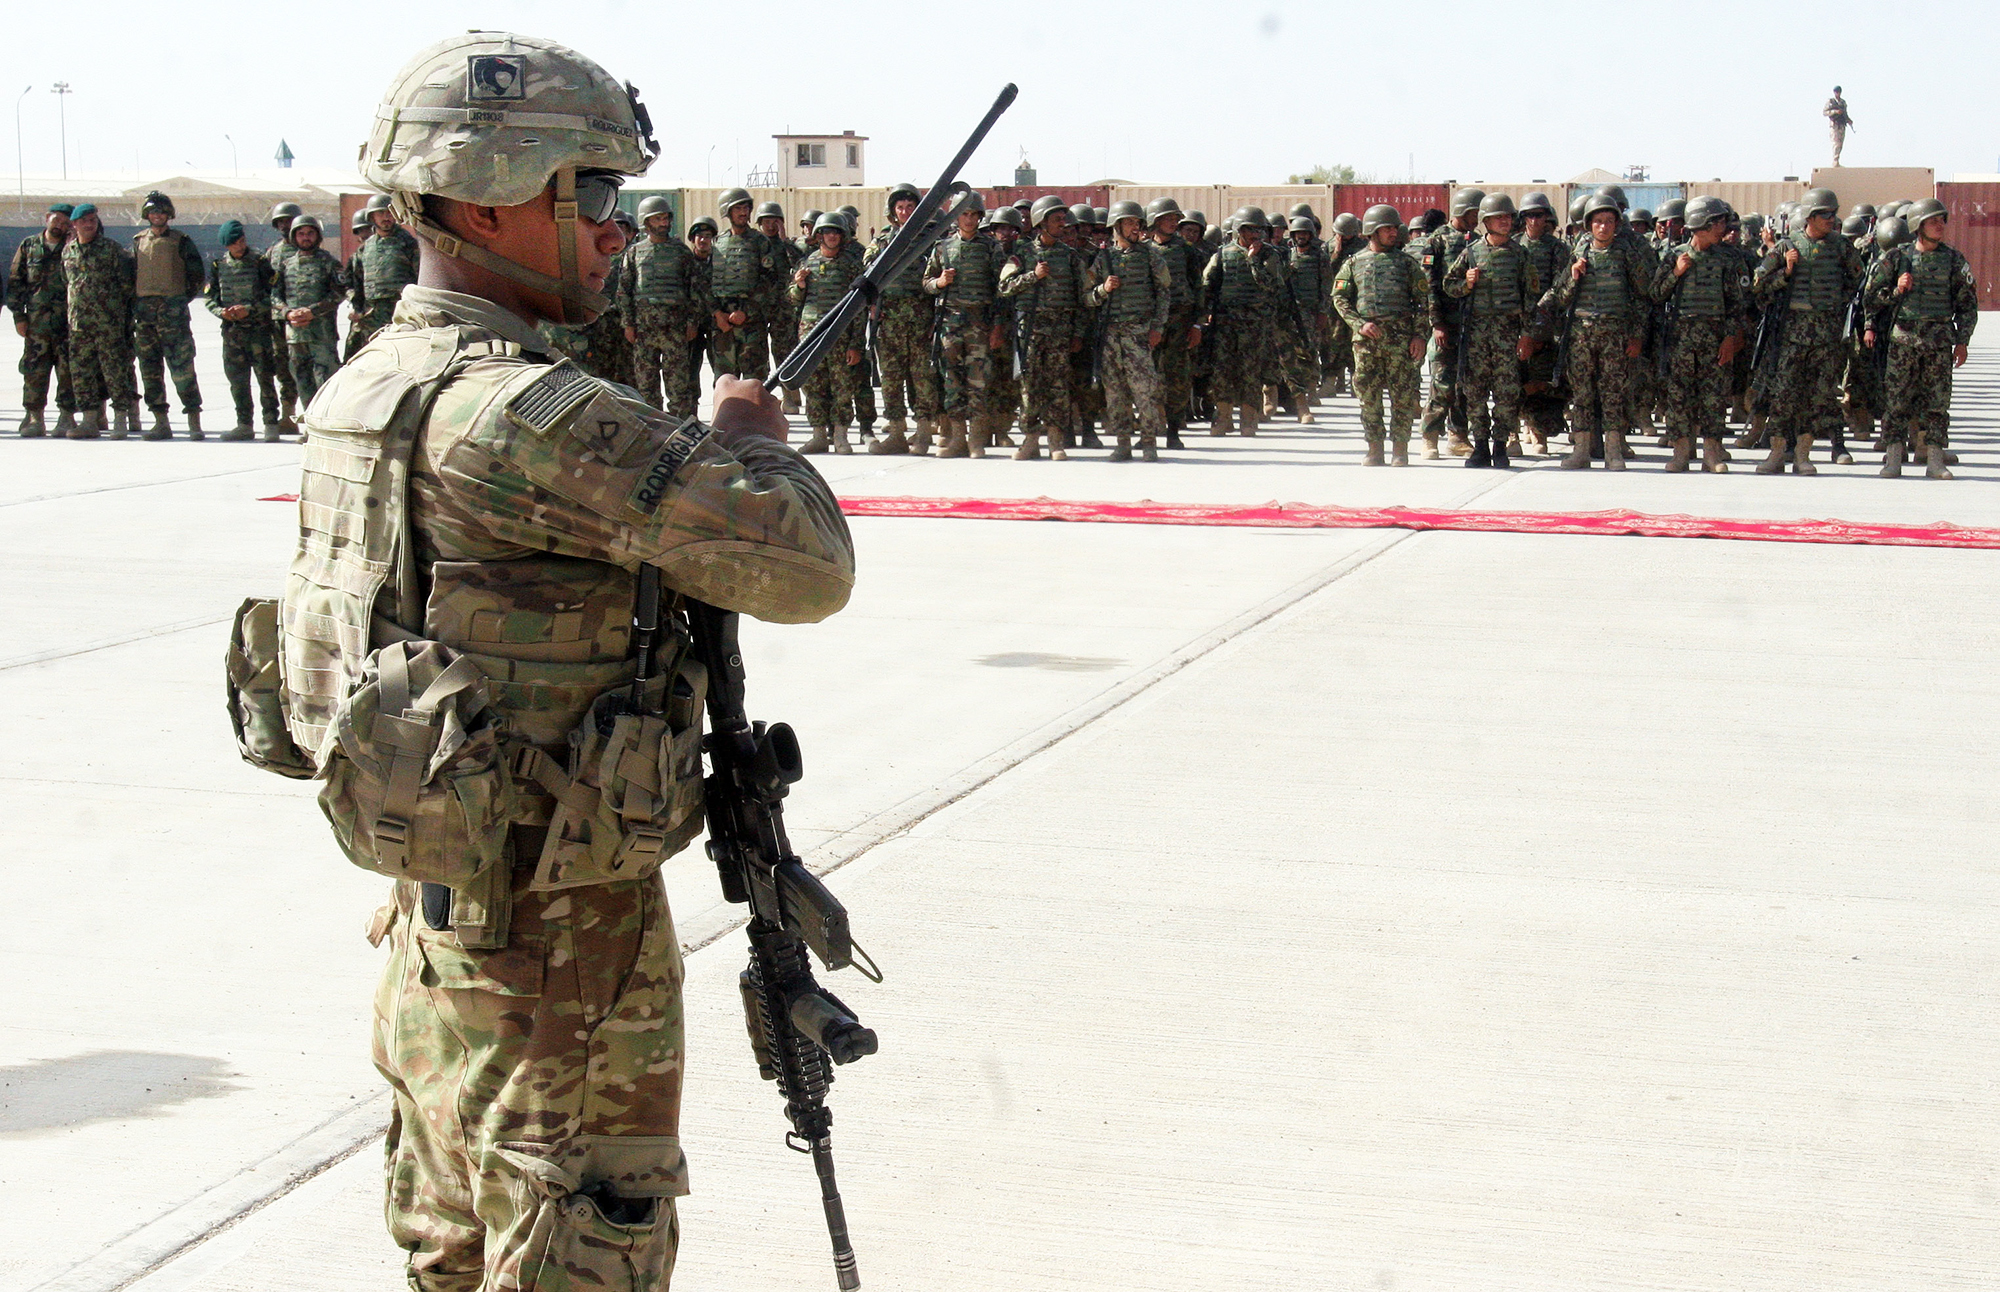 U.S. military personal stand guard during a graduation ceremony in Lashkargah, Afghanistan, on July 24, 2016.